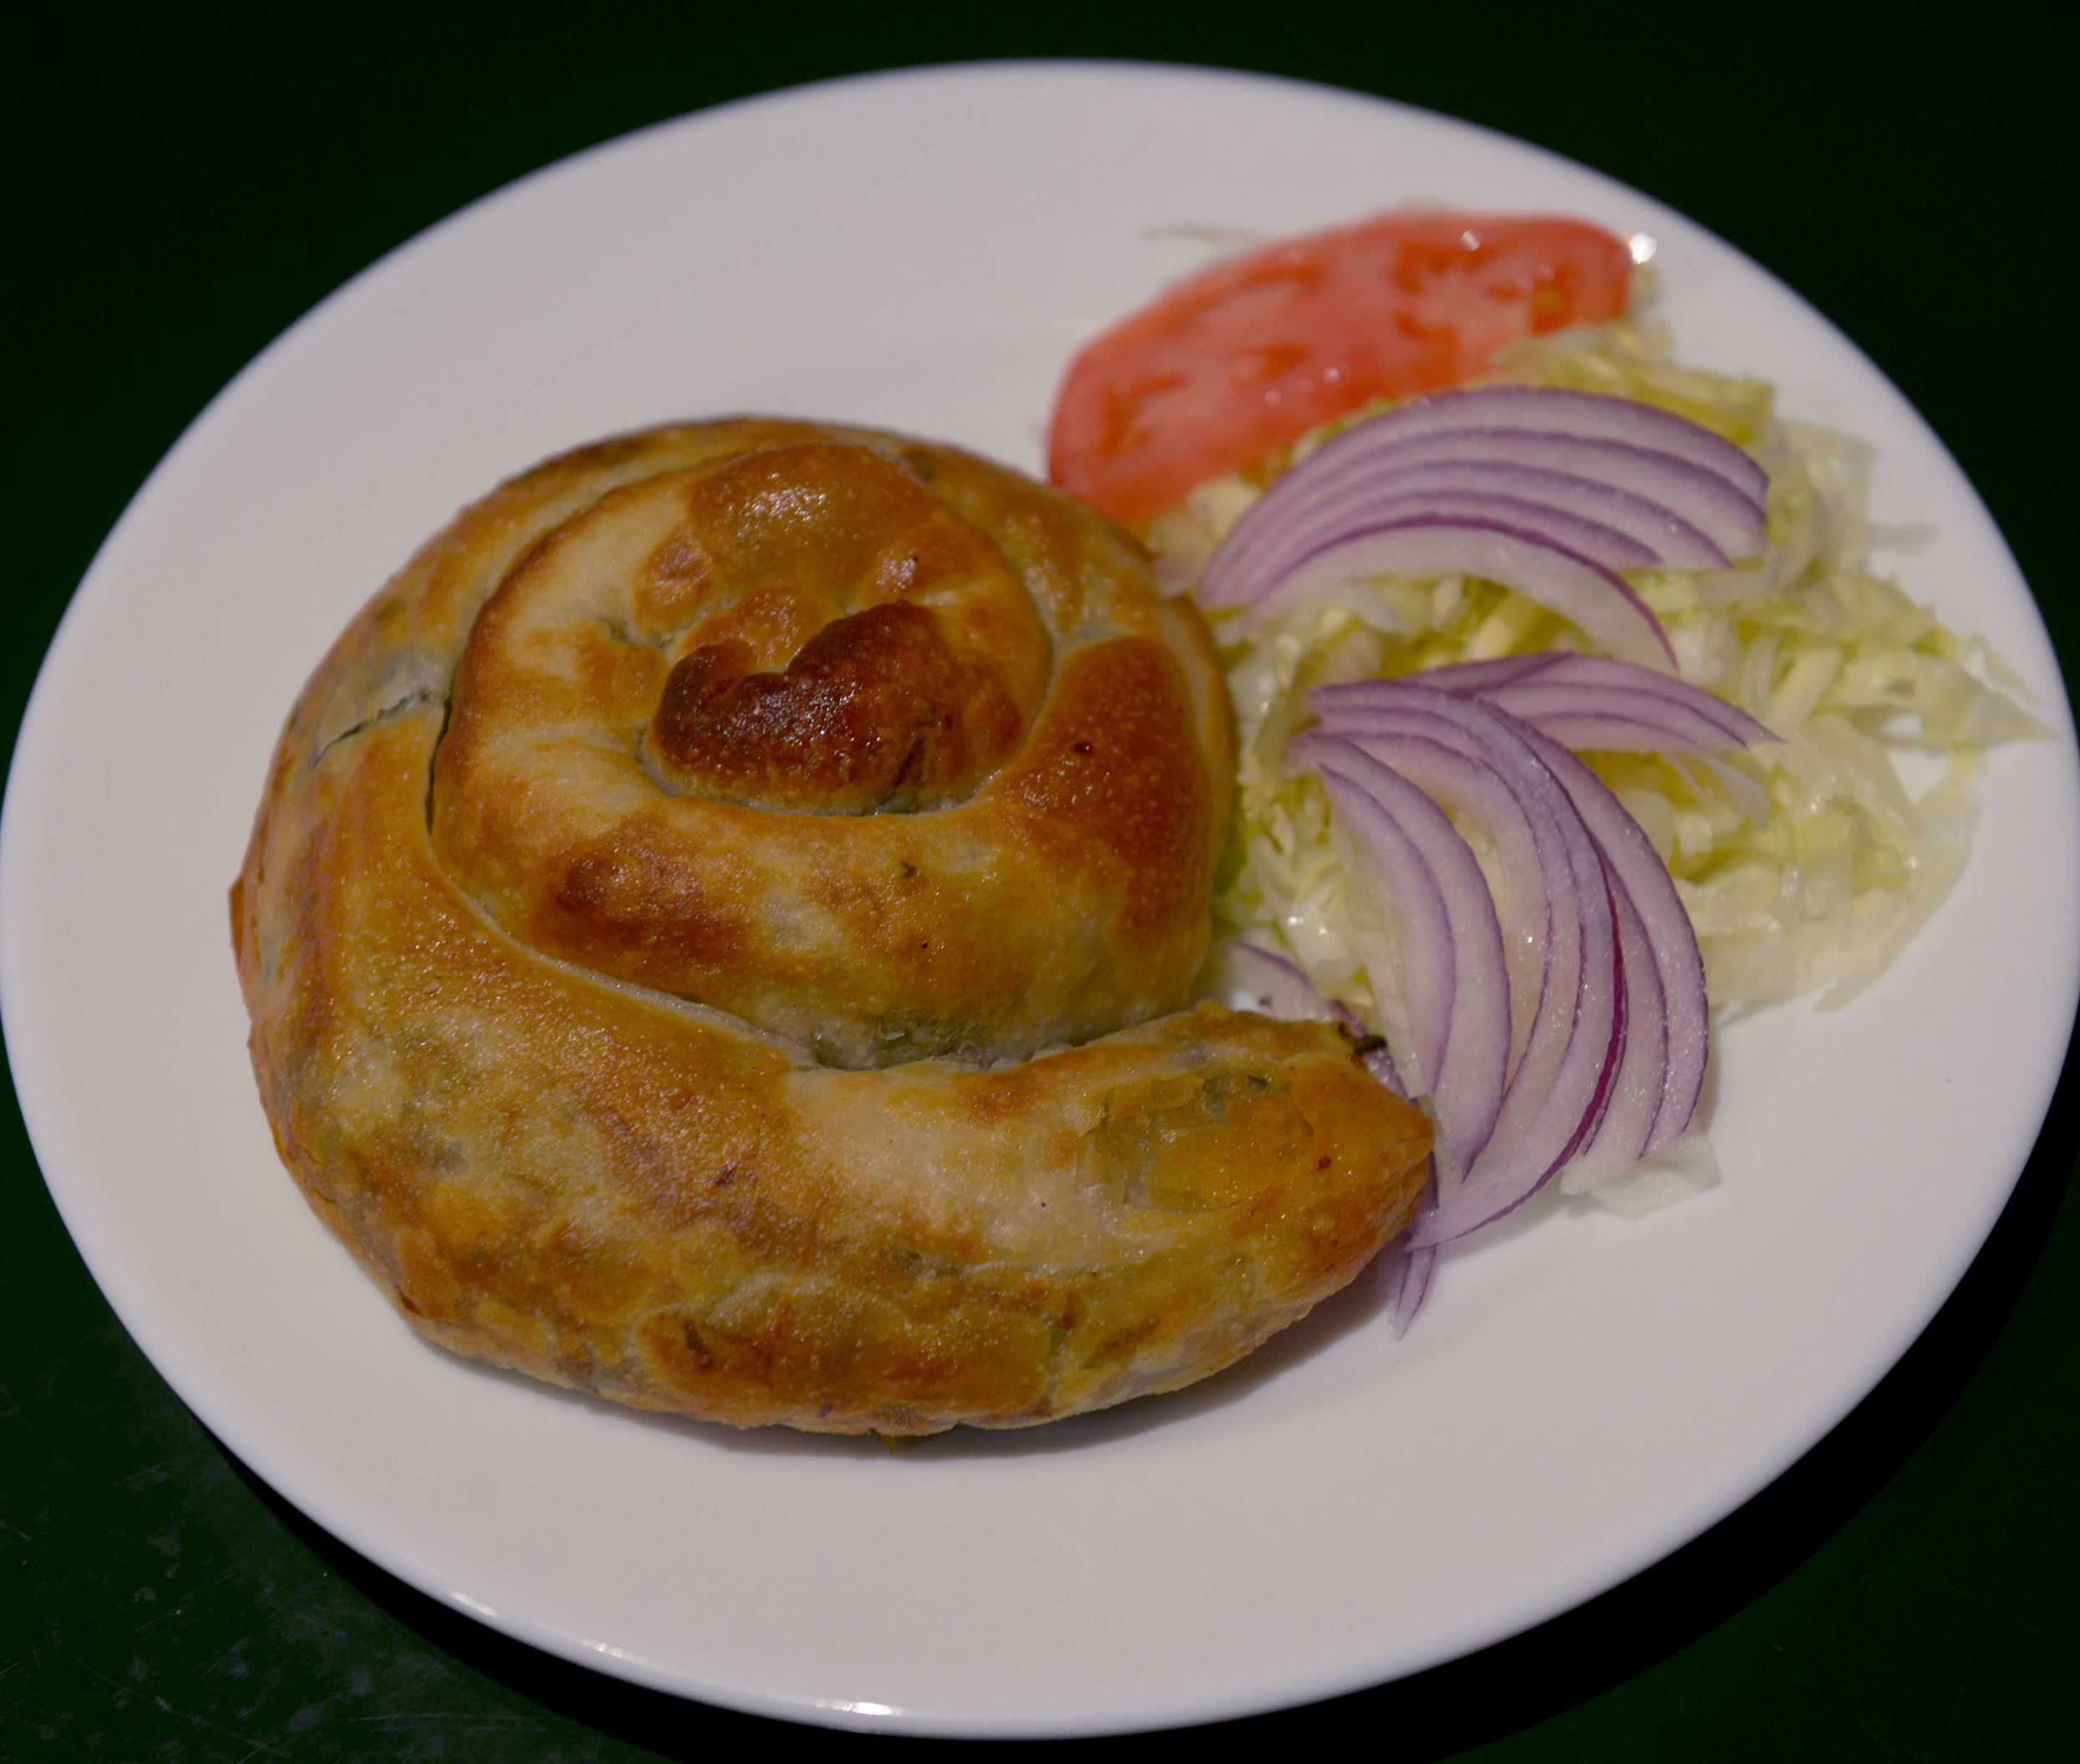 20150403ppTABLE0409WKNMAG3-2 A Spinach and Feta Pita Swirl prepared at Fredos Market, Deli & Catering in Dormont.